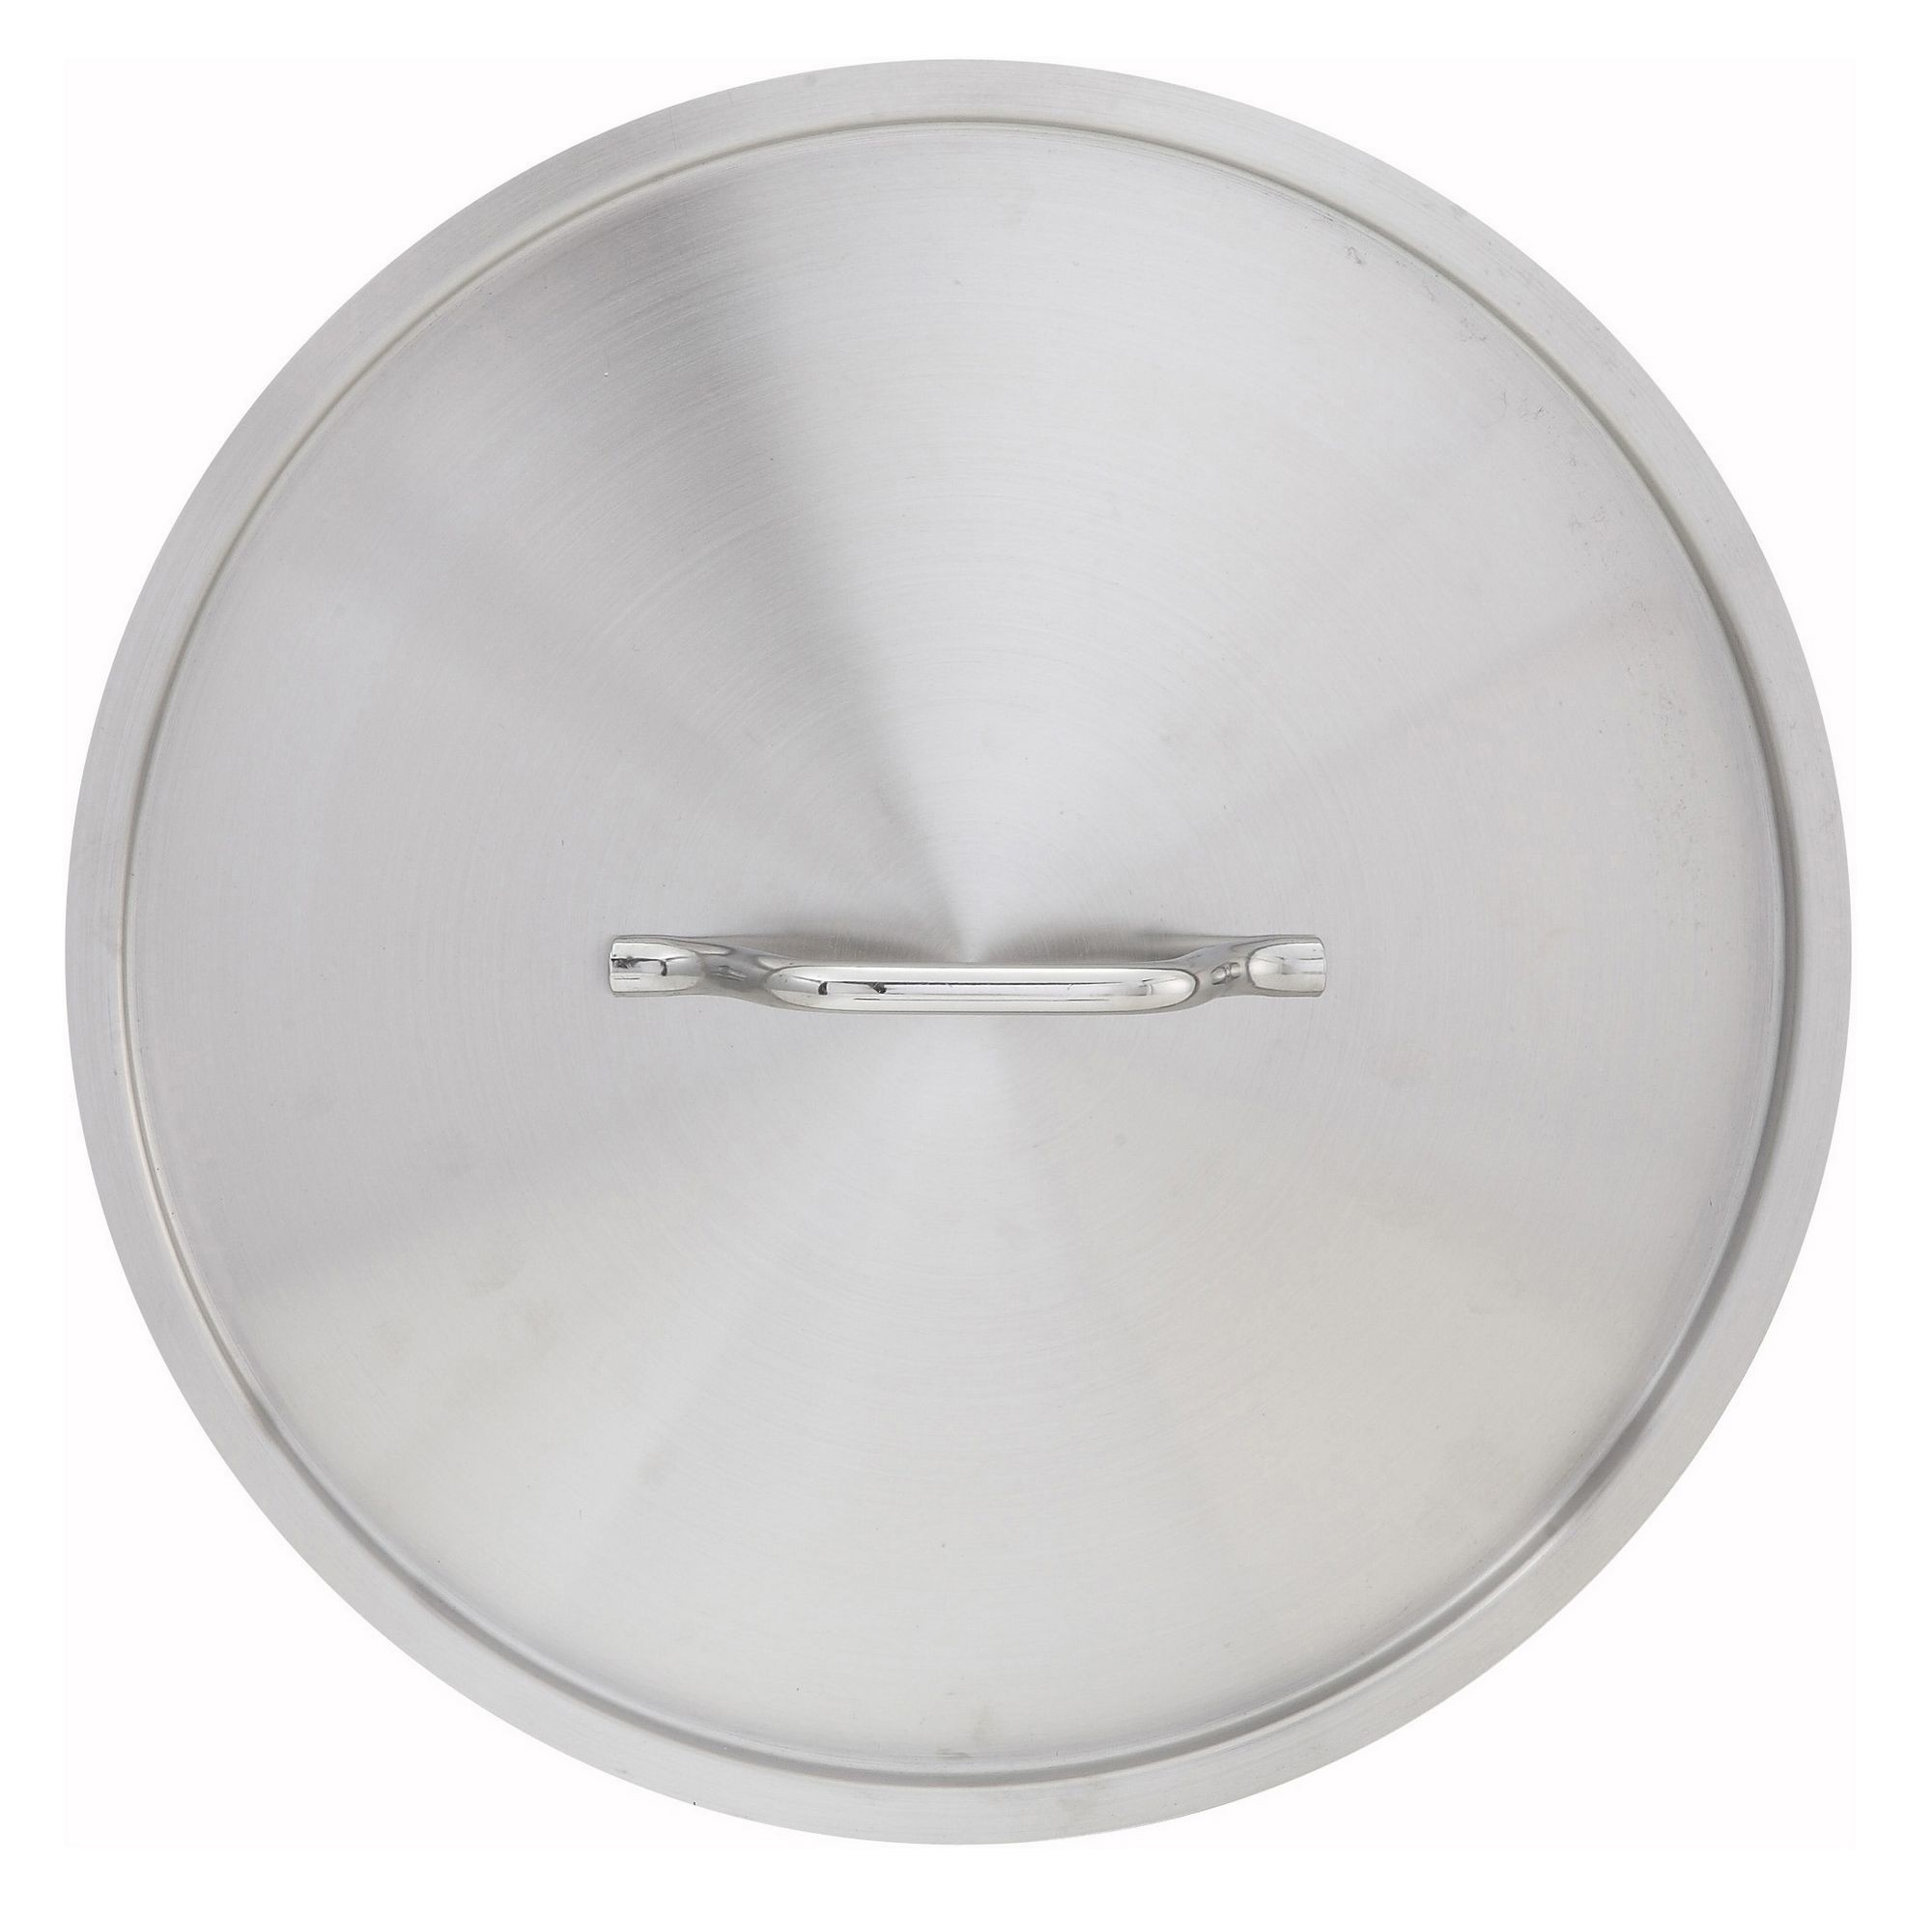 Winco SSTC-12 Stainless Steel Cover for SST-12, SST-16, SSFP-11, SSFP-11NS